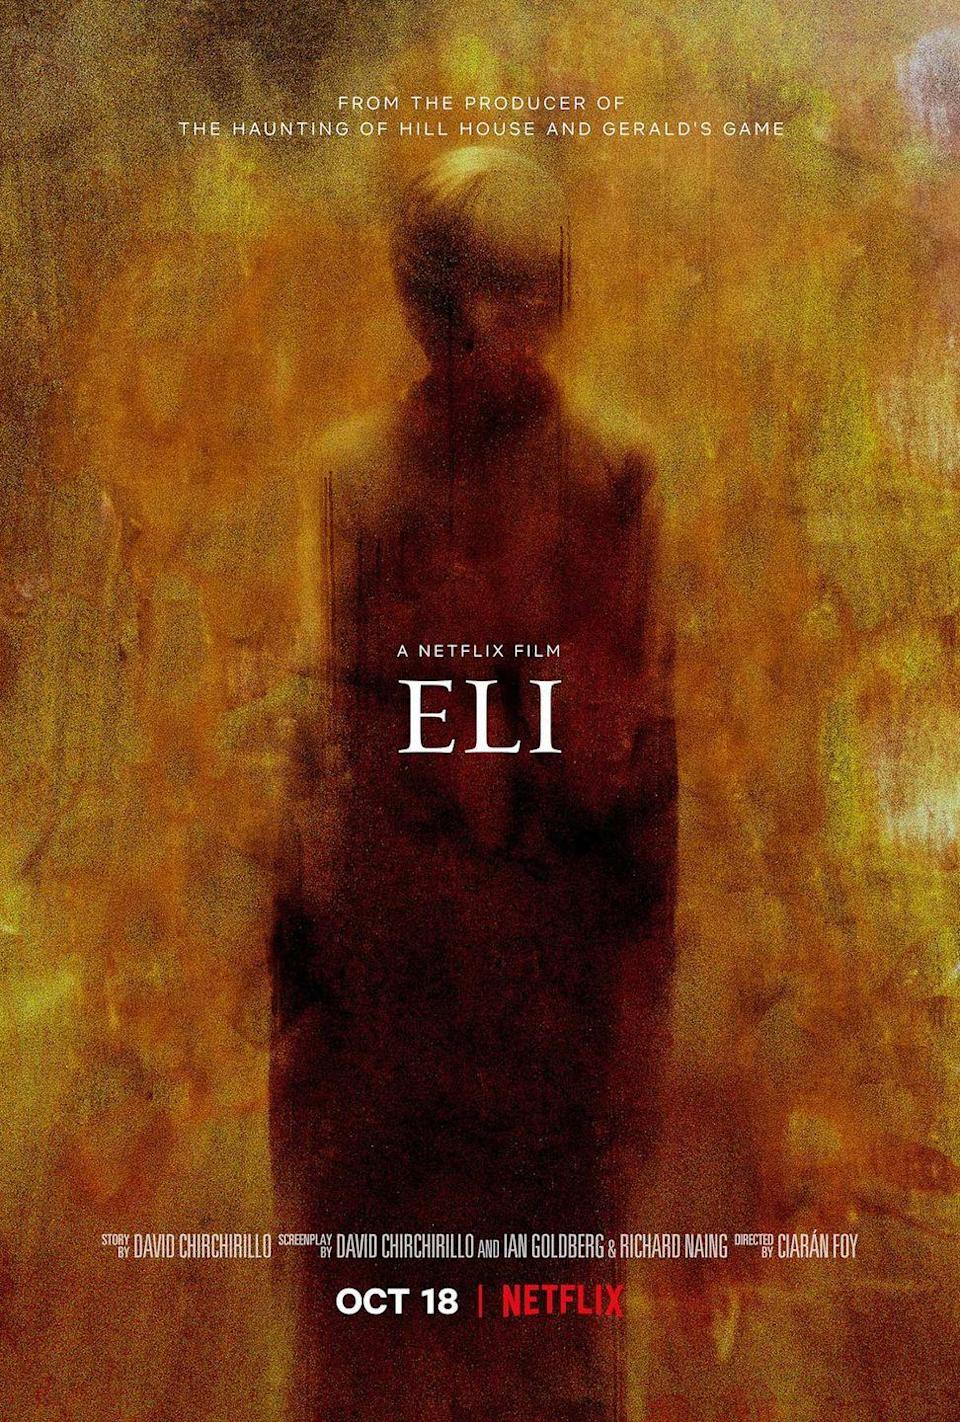 "<p>If you're creeped out by hospitals, look away from <em>Eli</em>, about an 11-year-old boy with a debilitating illness who checks into a clinic that says it can help him. But is the experimental therapy all it's cracked up to be?</p><p><a class=""link rapid-noclick-resp"" href=""https://www.netflix.com/title/80206910"" rel=""nofollow noopener"" target=""_blank"" data-ylk=""slk:STREAM NOW"">STREAM NOW</a></p>"